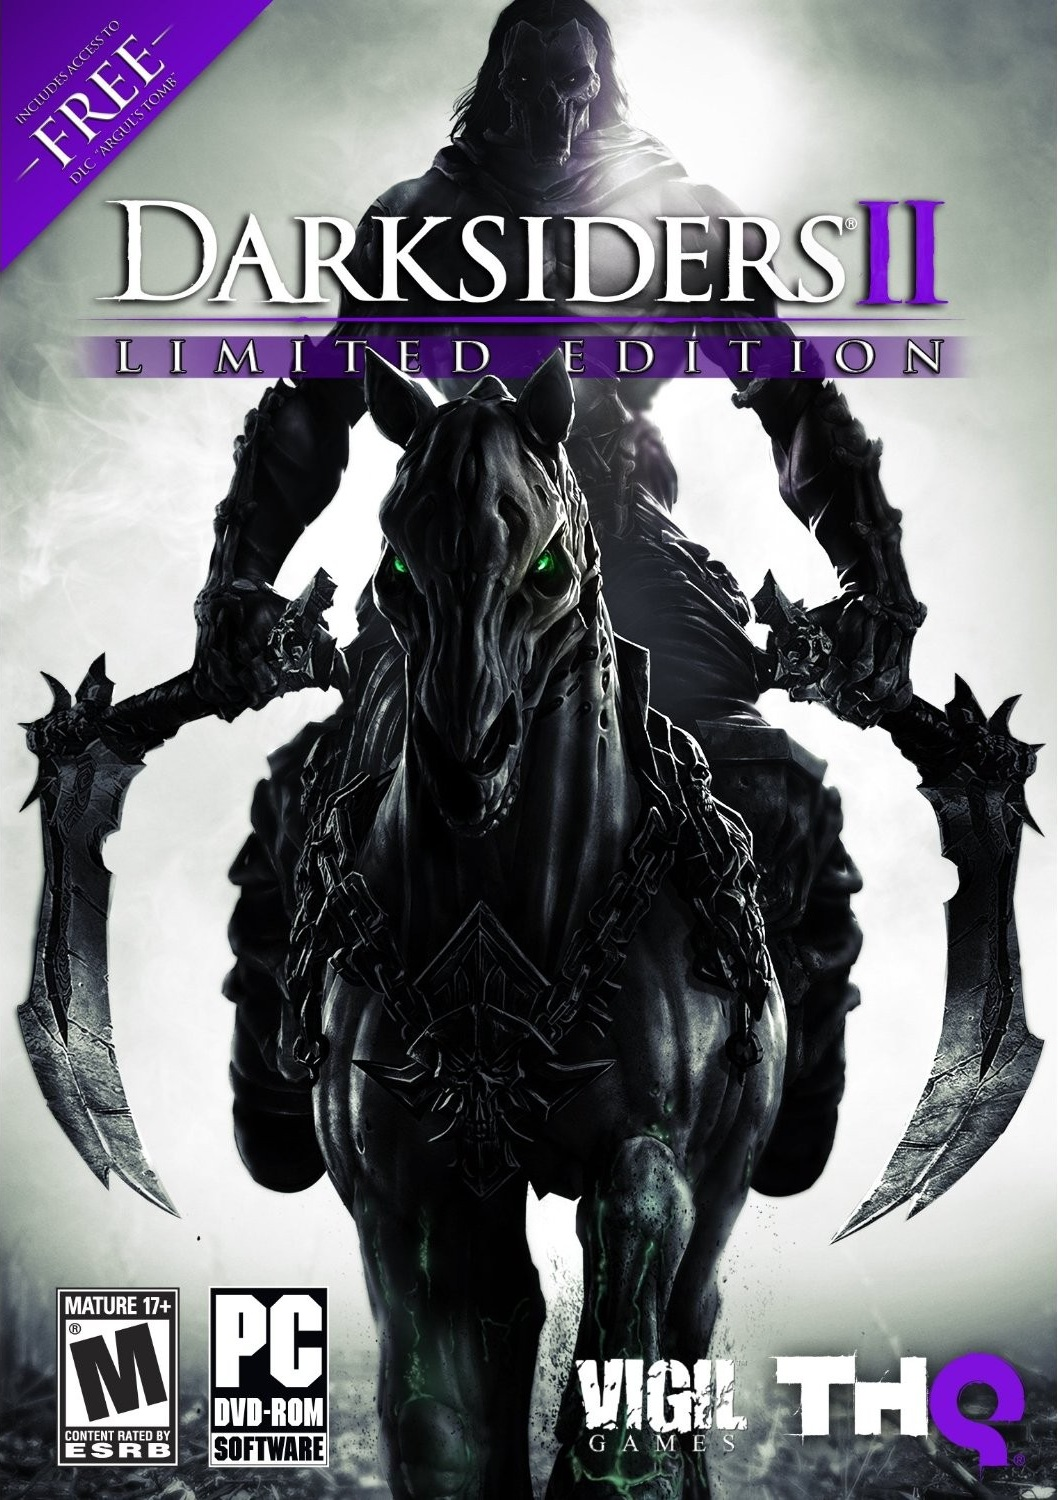 Darksiders II 2012 v1.5 [SKIDROW] Crack Only